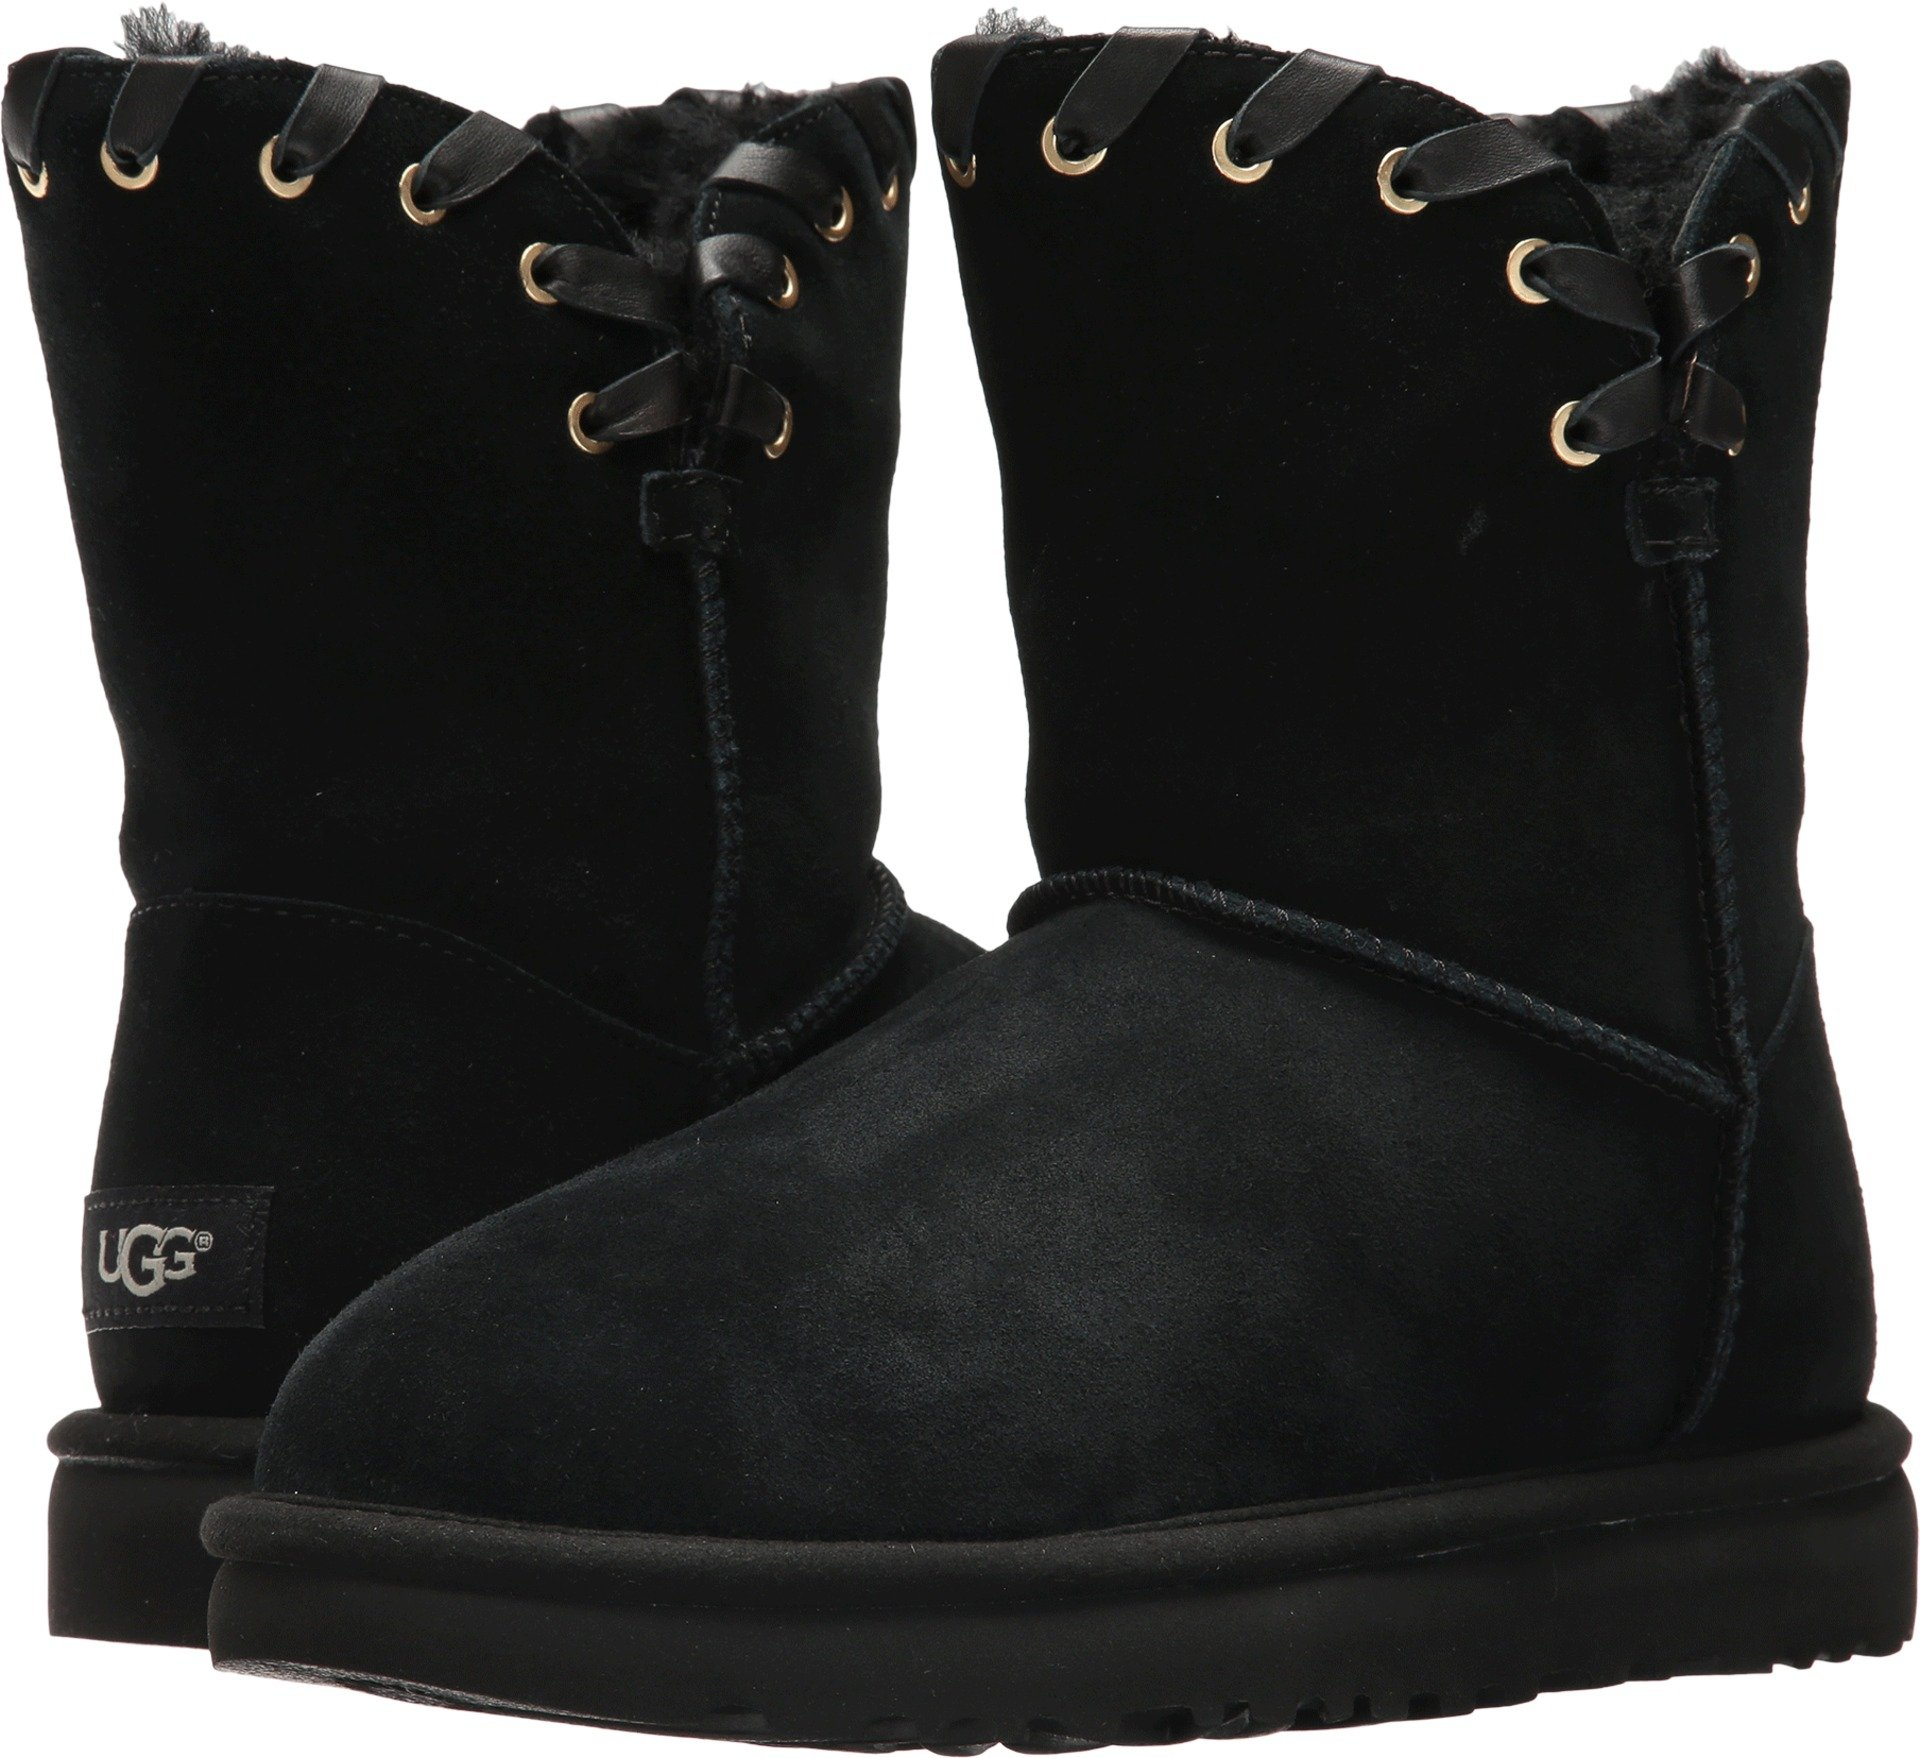 UGG Women's Aidah Winter Boot, Black, 8 M US